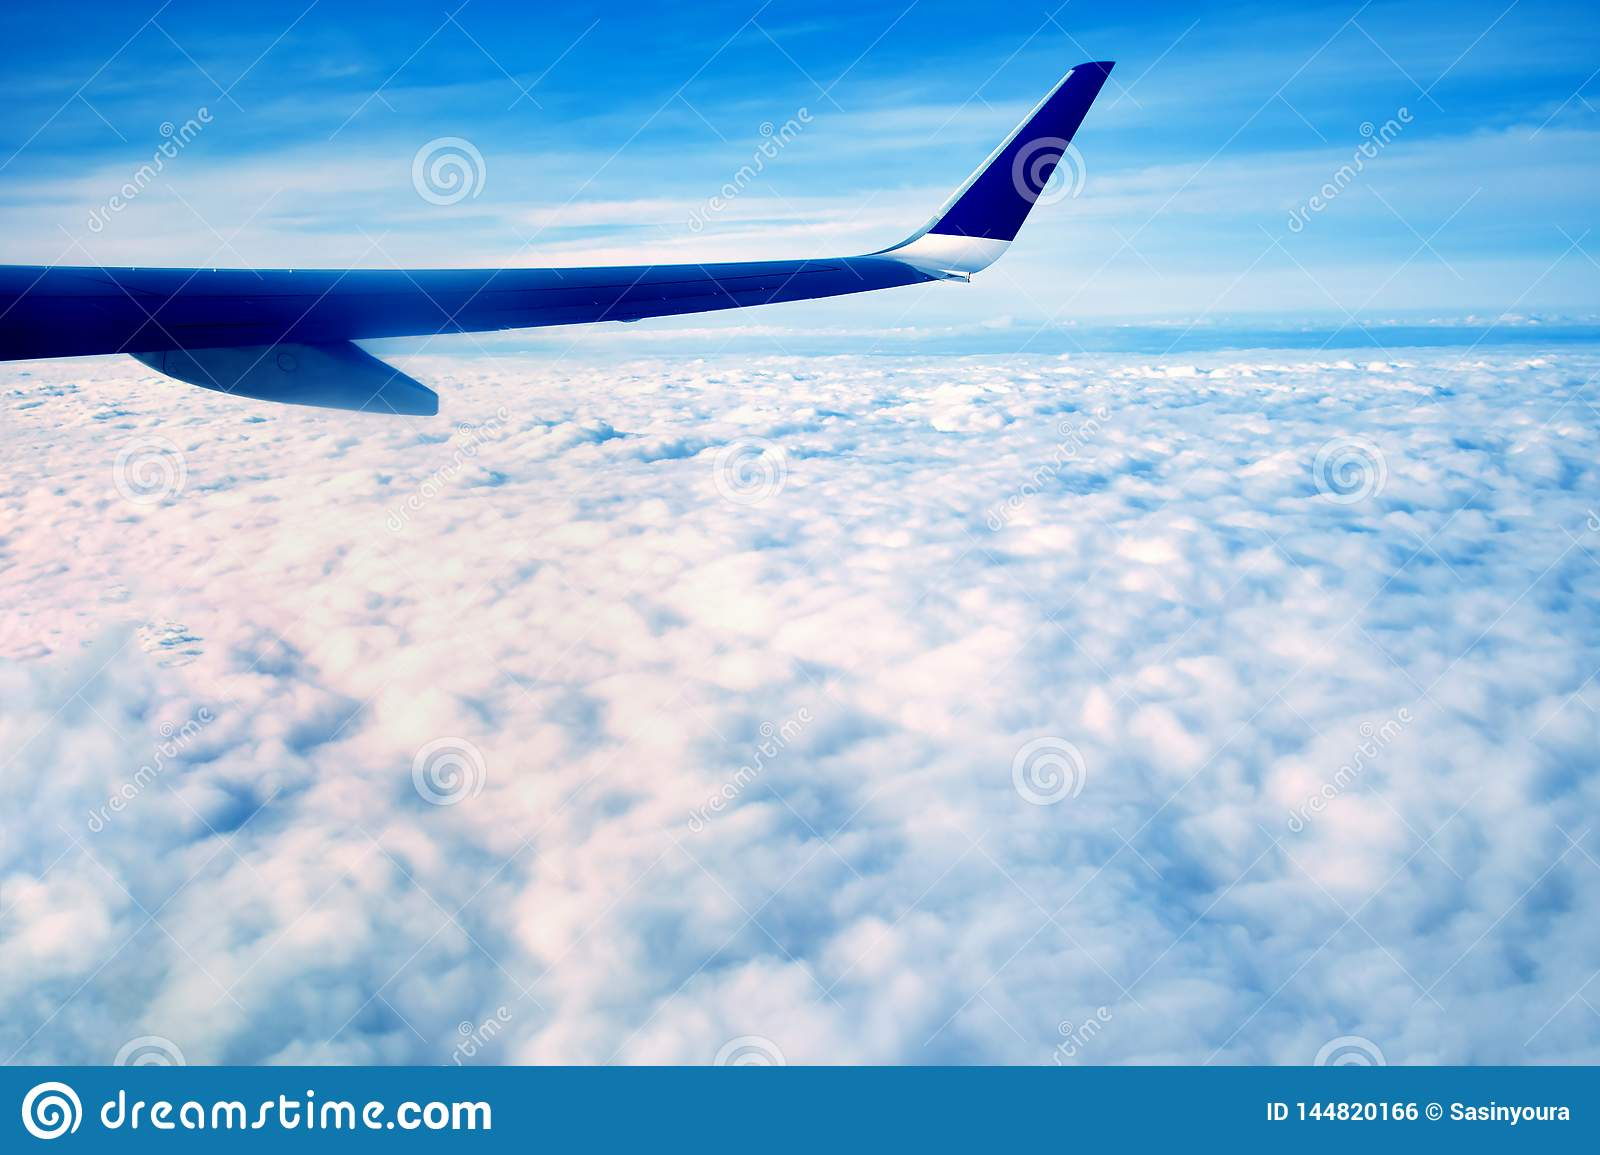 The blue wing of a large airplane, flying over the white morning clouds, at high altitude above the ground, against the blue sky